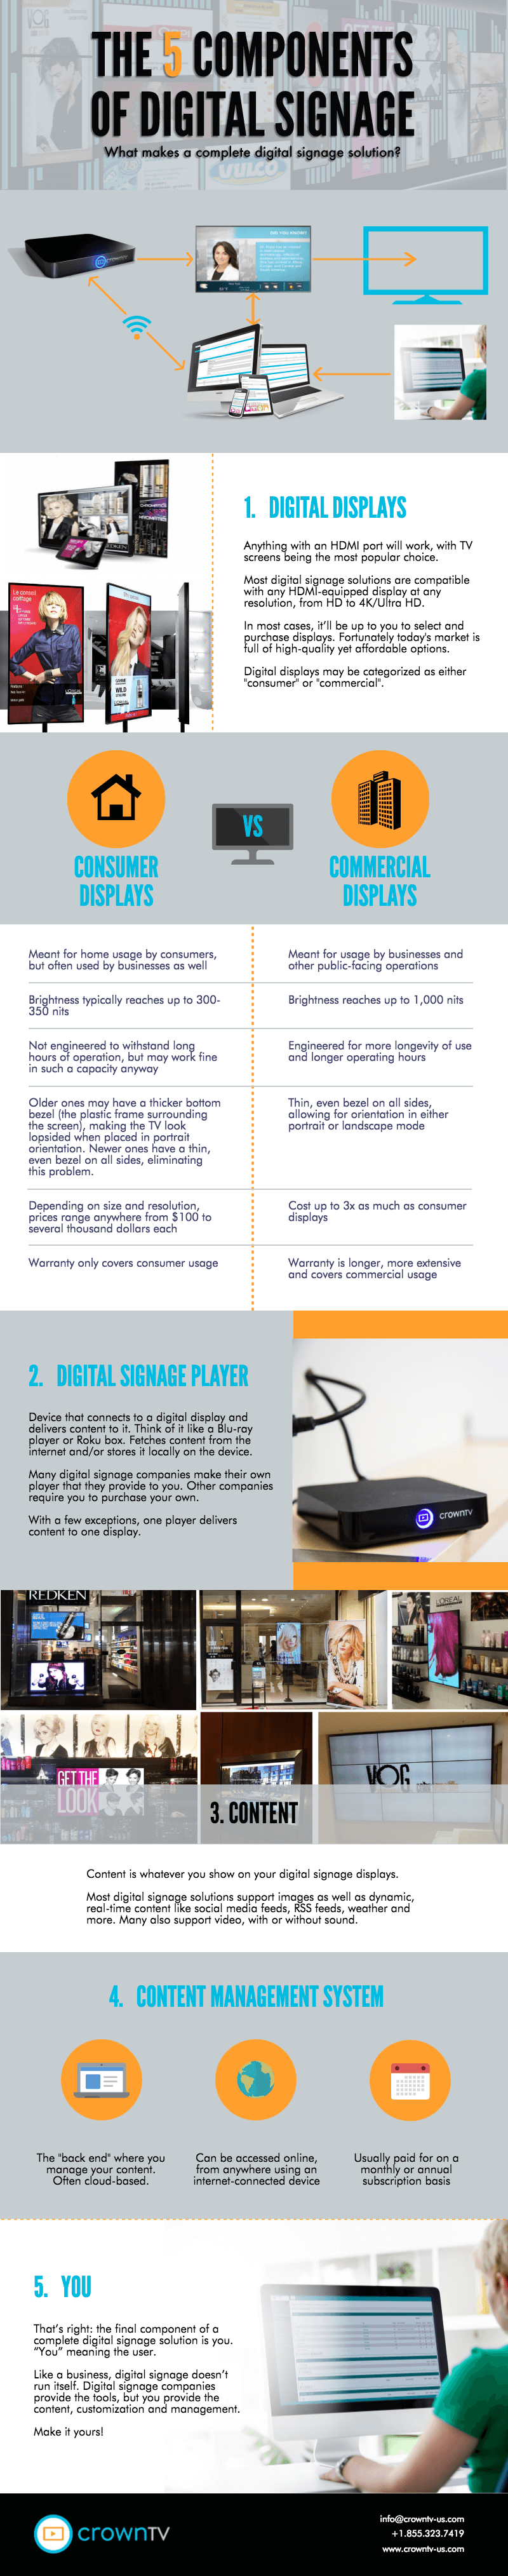 digital signage components, infographic